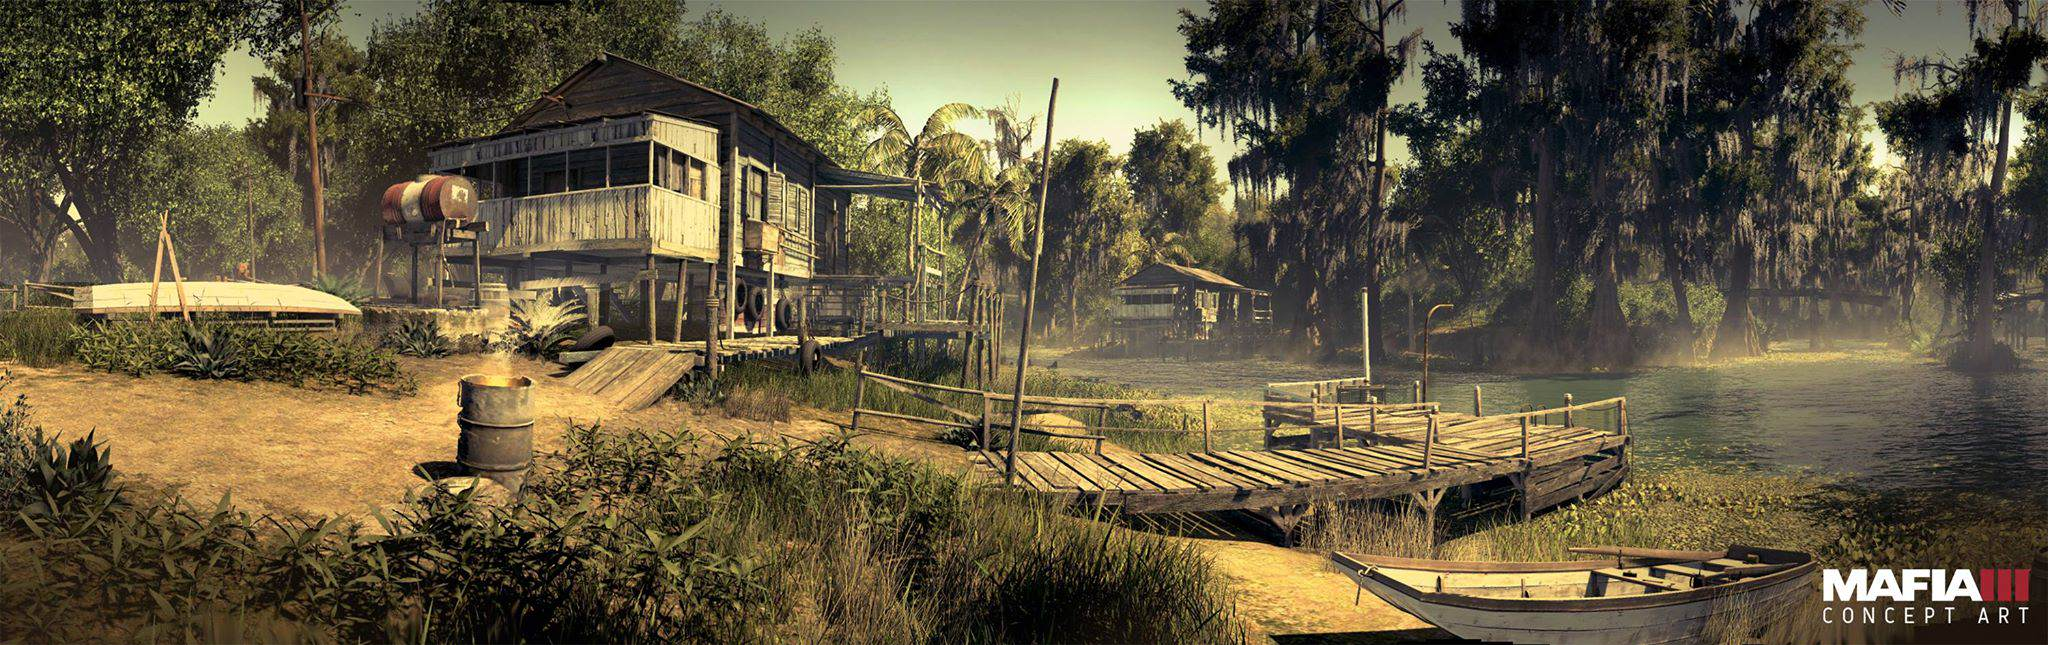 mafia3 bayou concept art Check Out Every Awesome Piece Of Mafia 3 Concept Art Released